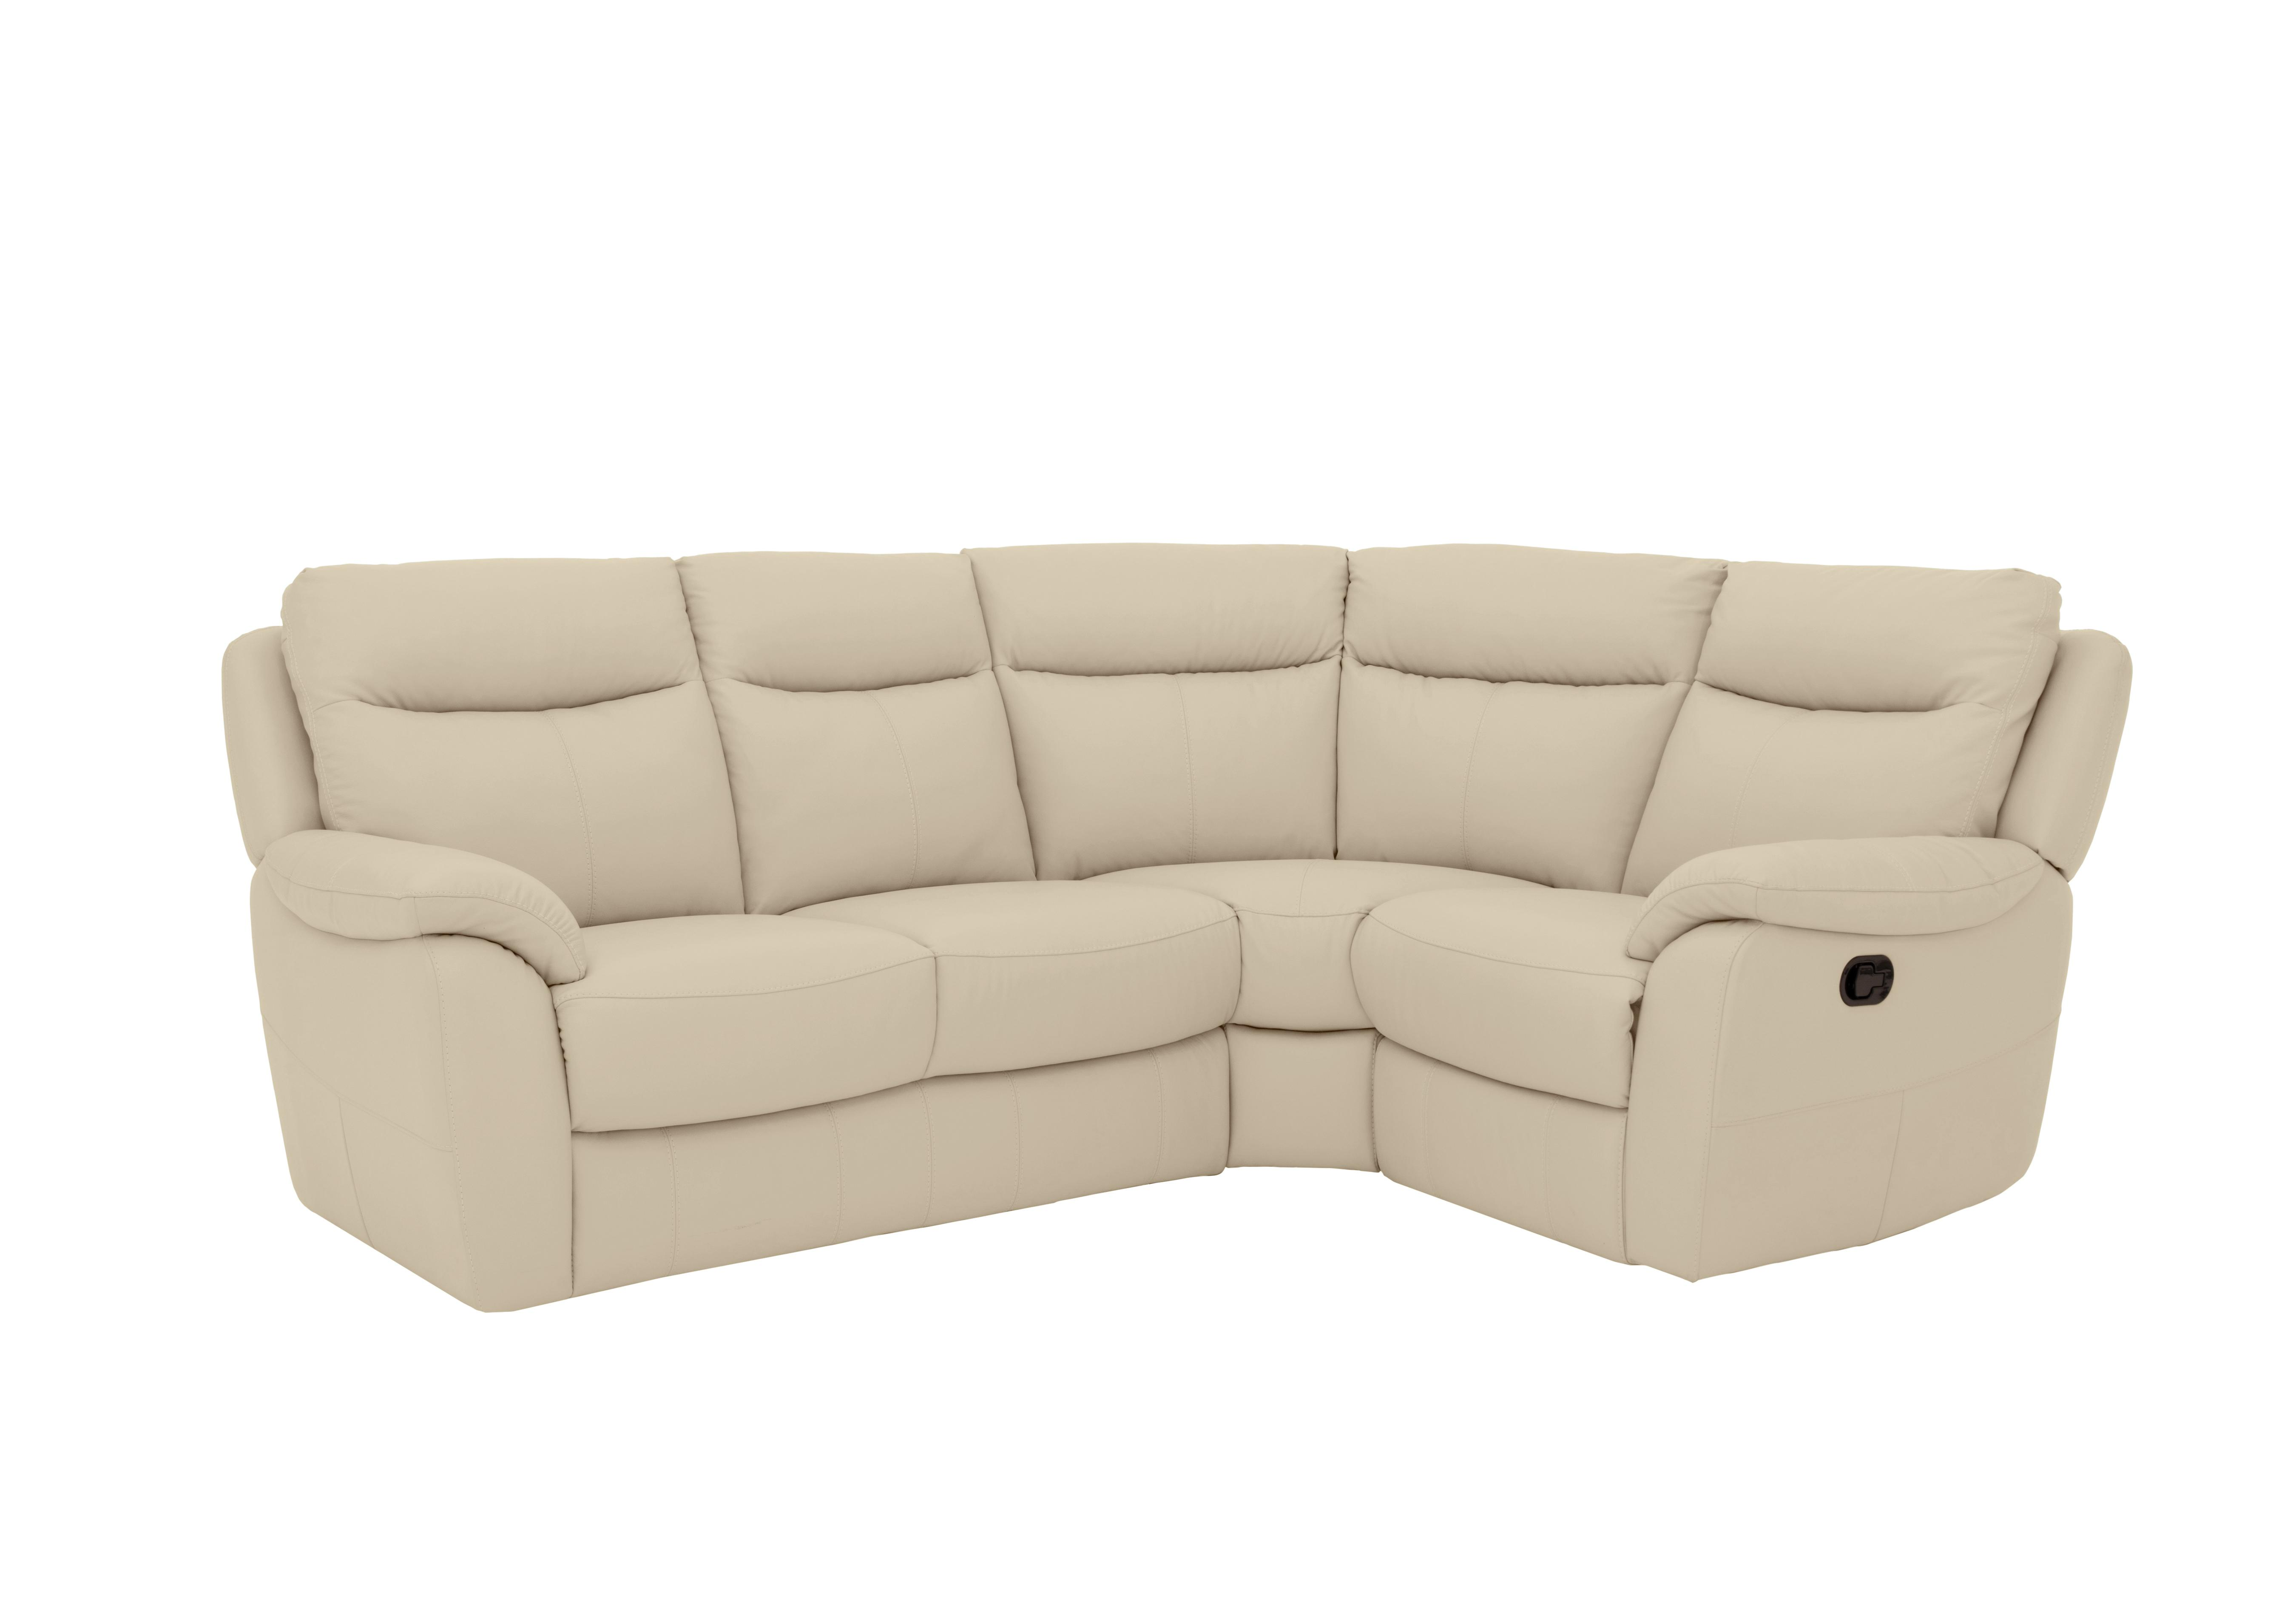 furniture village leather corner sofa bed soft suede pet throw snug compact world of